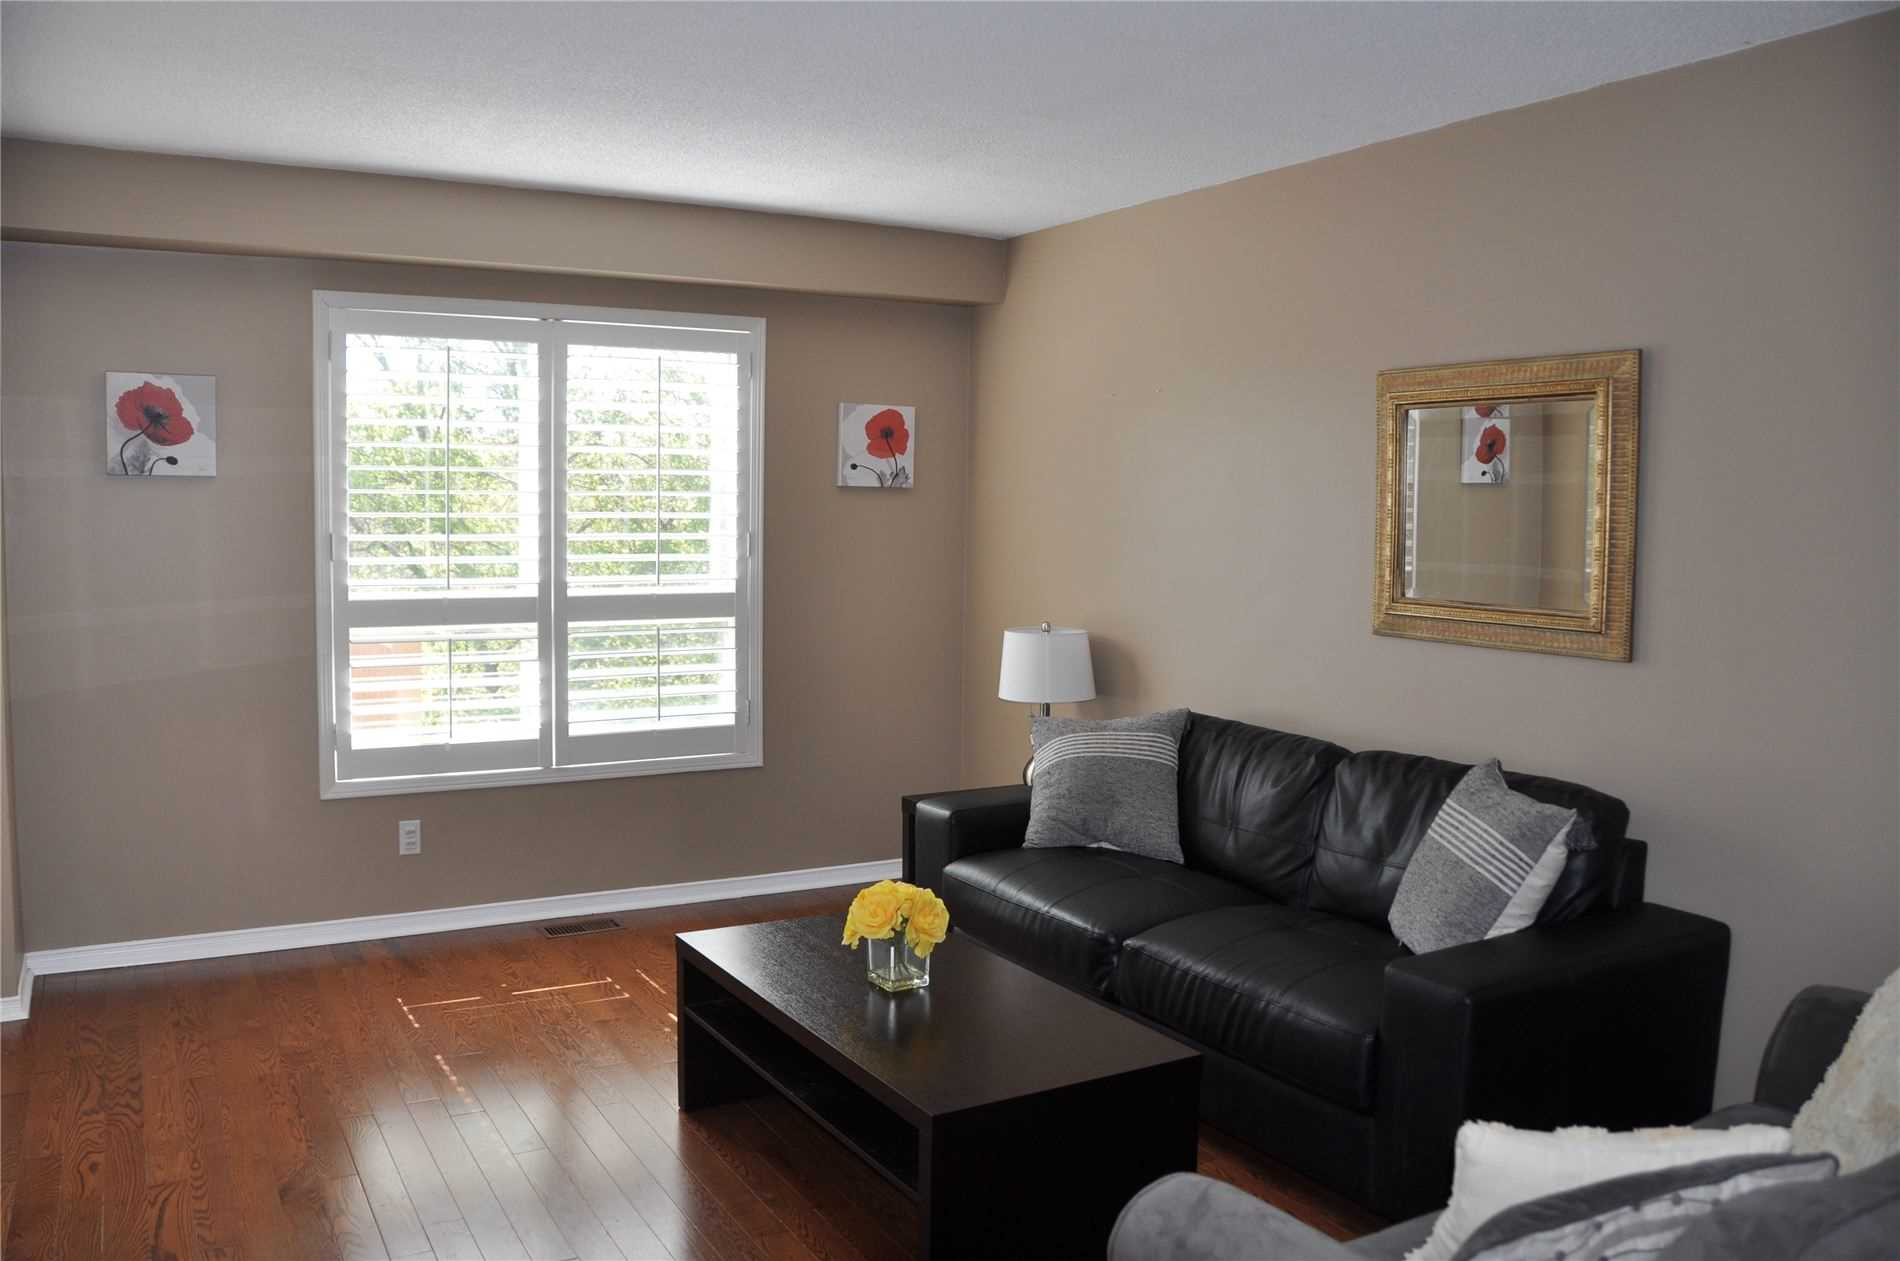 Image 6 of 12 showing inside of 3 Bedroom Condo Townhouse 2-Storey for Sale at 22 Macintyre Lane Unit# 11, Ajax L1T3X3